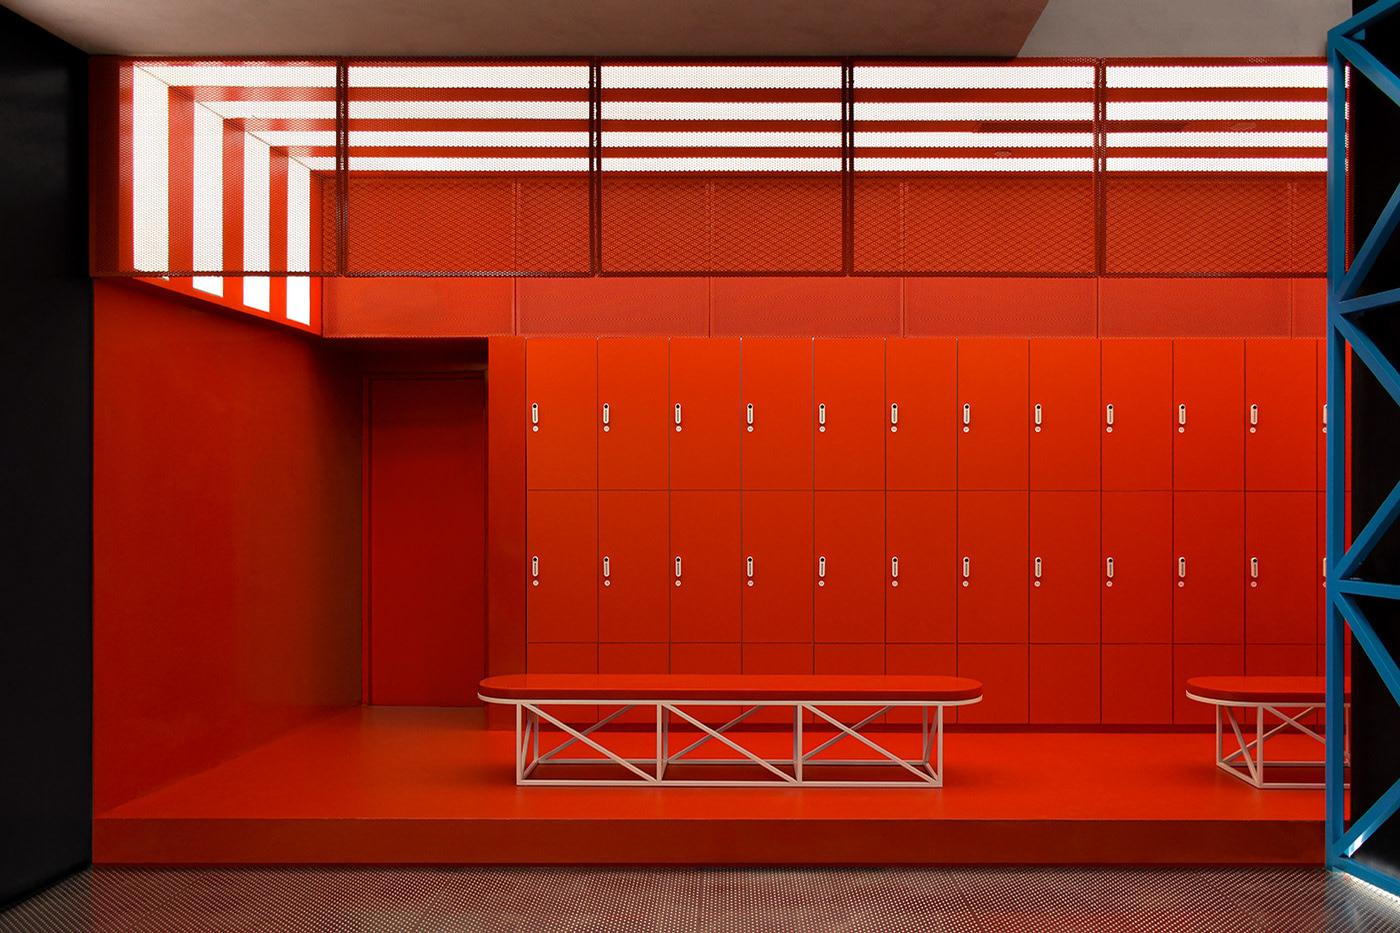 A locker room in the gym is almost entirely red